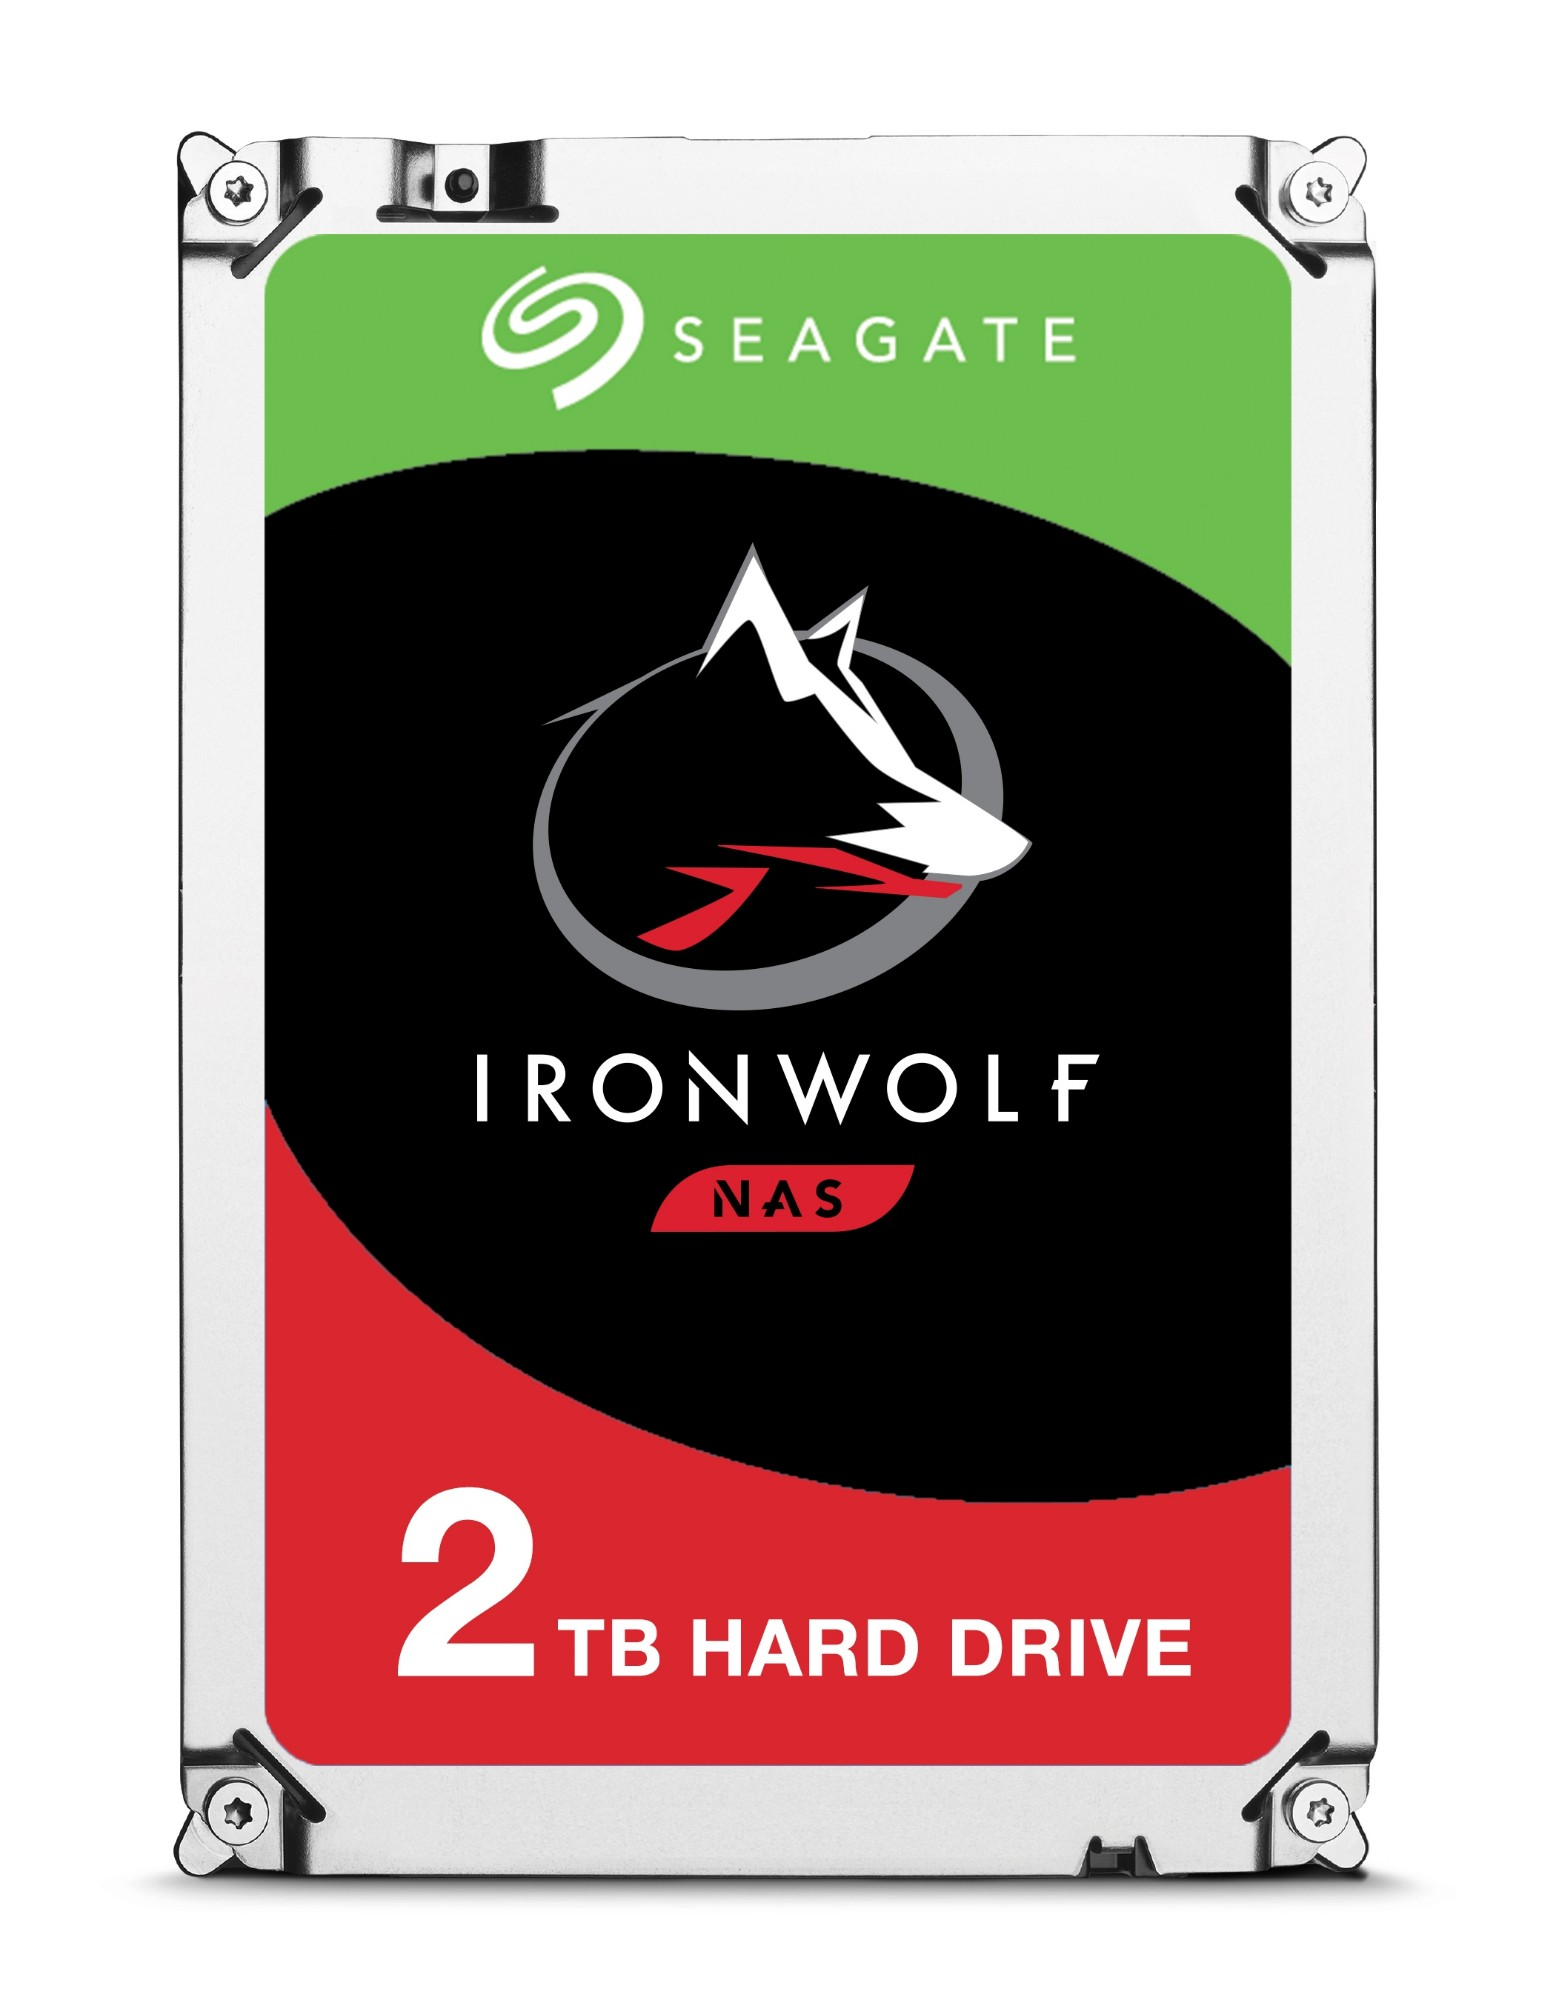 Seagate IronWolf ST2000VN004 internal hard drive 3.5